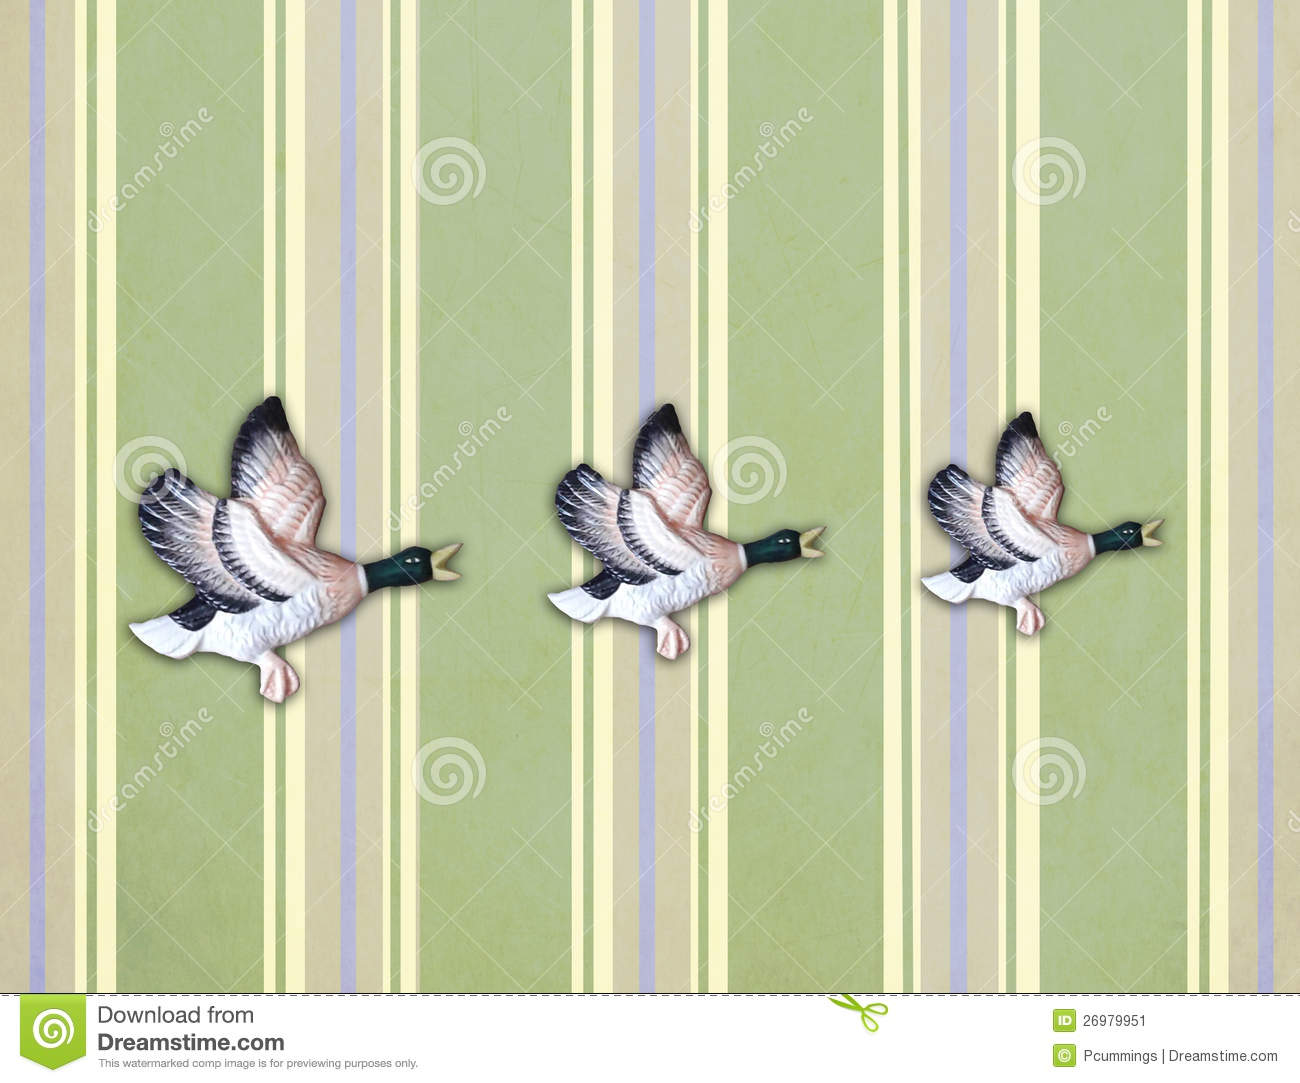 Ducks Unlimited Home Decor Ducks Unlimited Decals Quotes